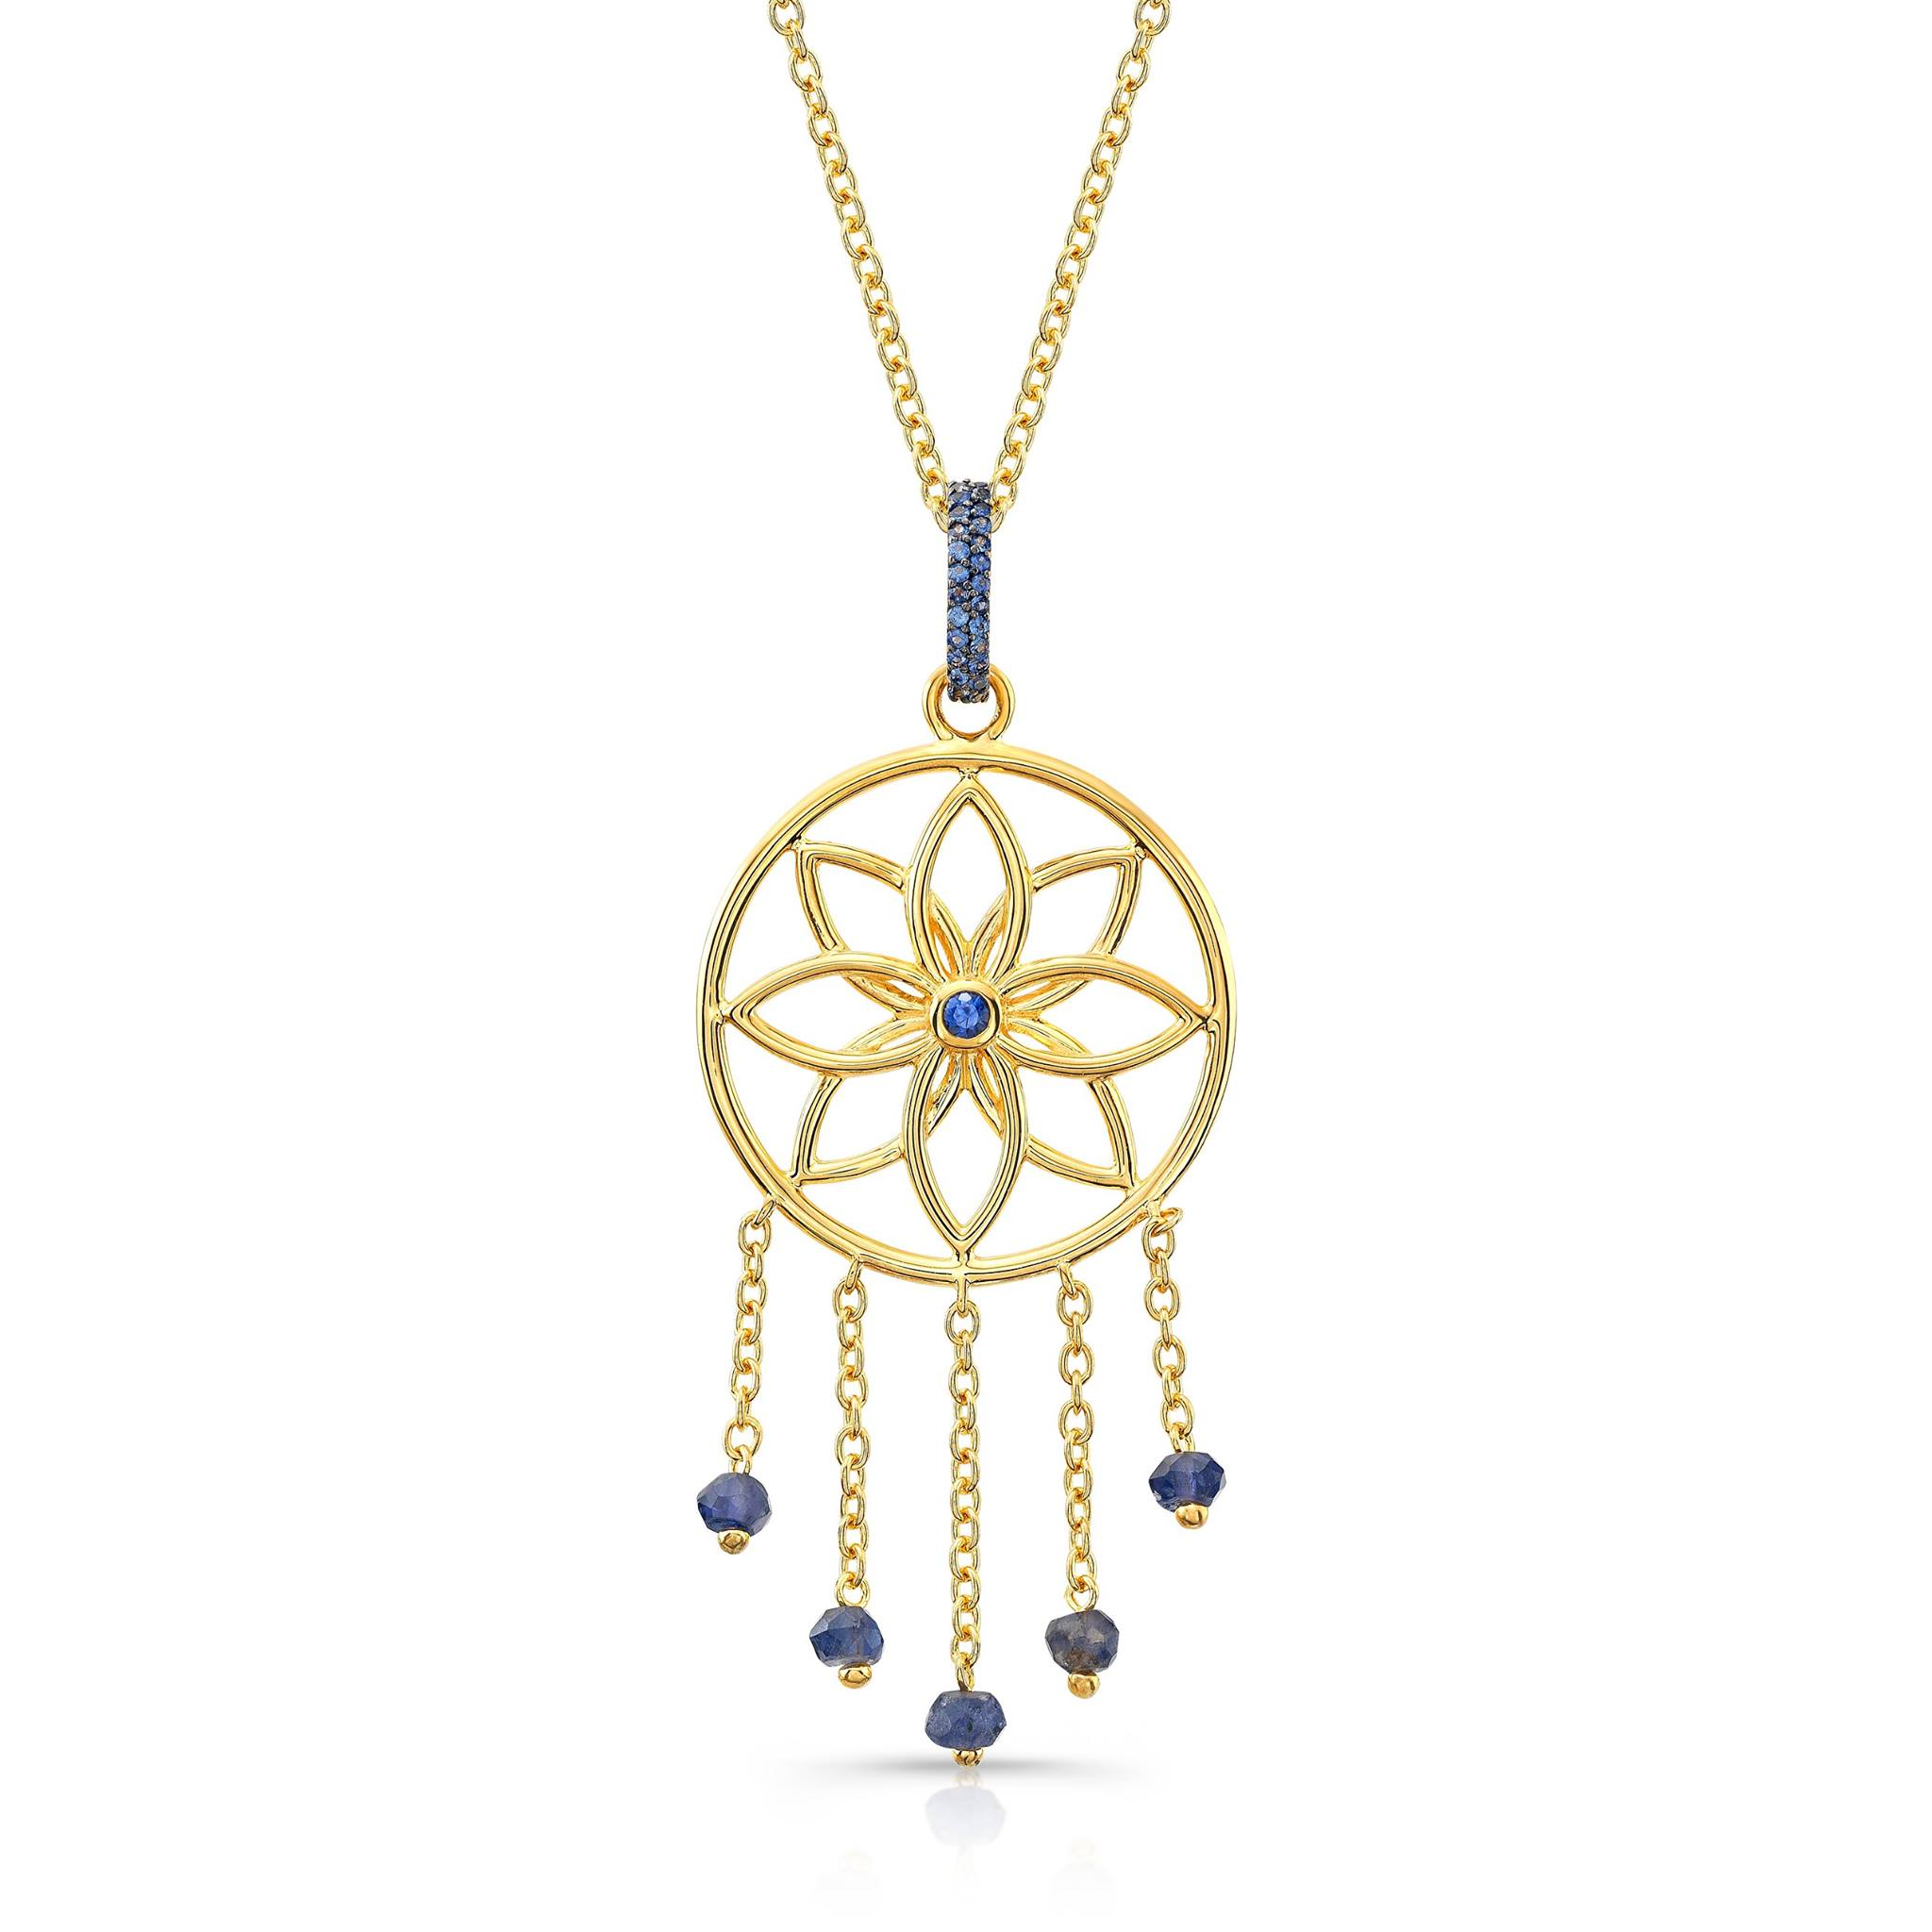 Mandala Dream Catcher Pendant in 22k Yellow Gold.